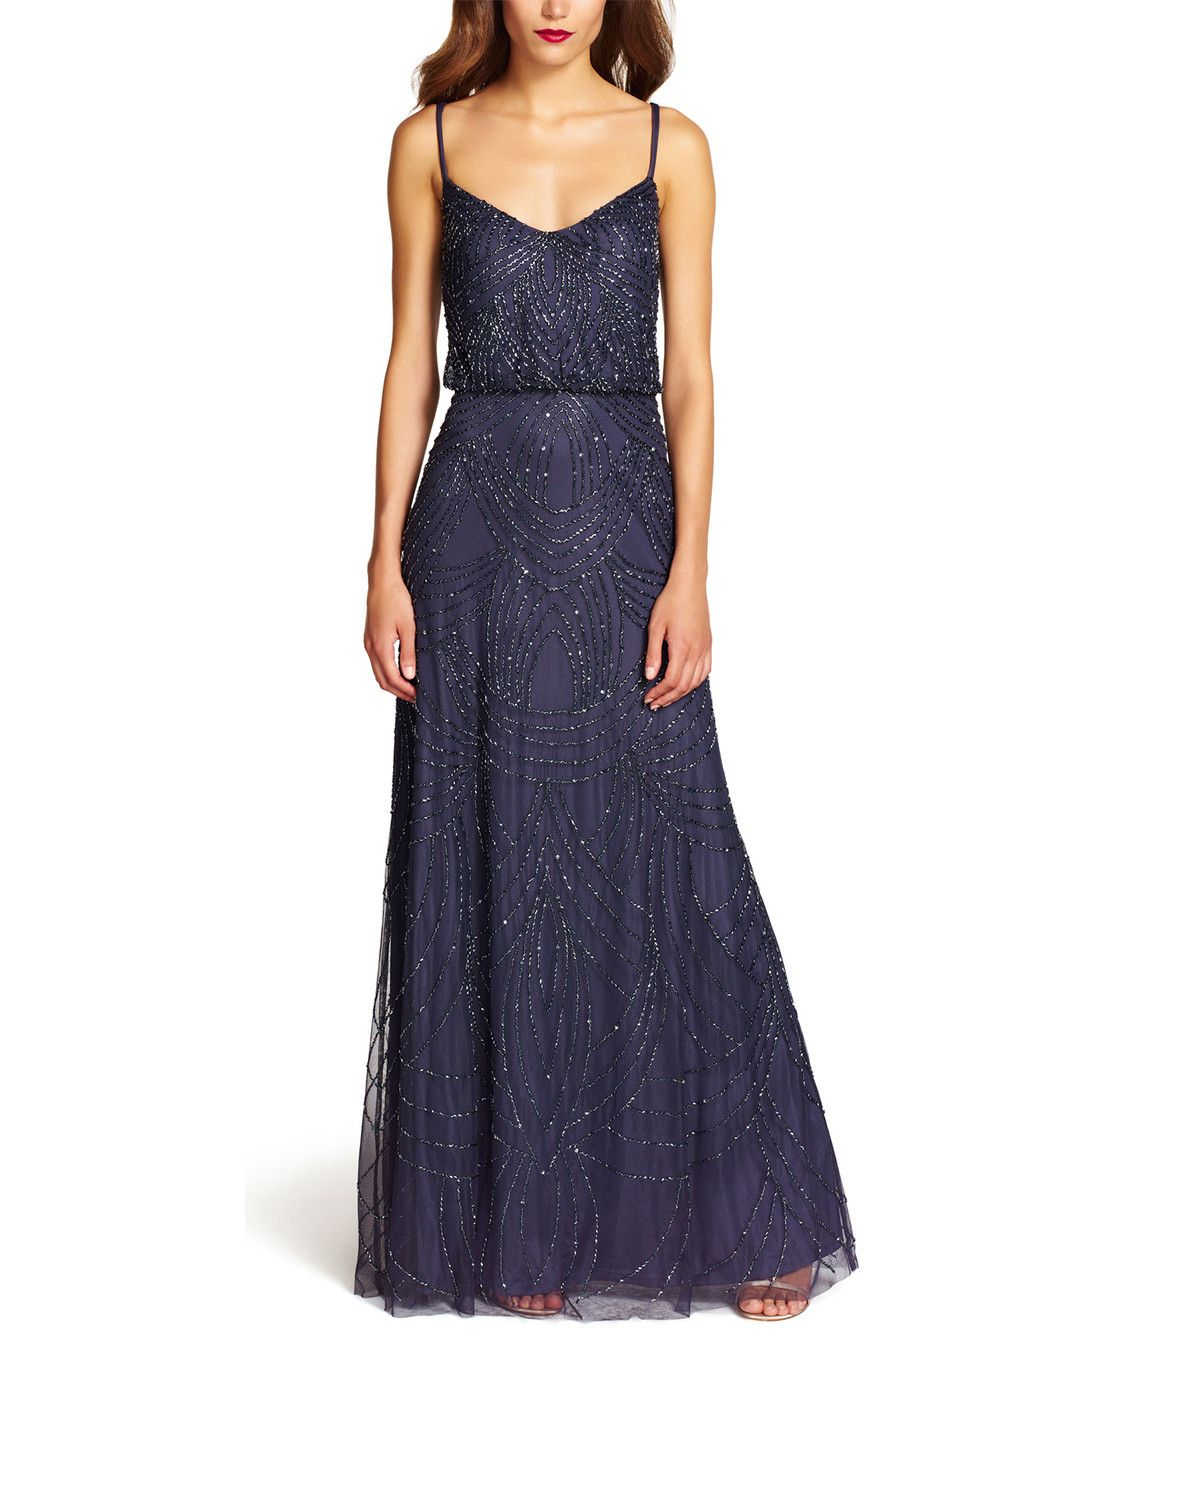 Adrianna Papell Beaded Blouson Gown in Gunmetal - Sample | Vestiditos